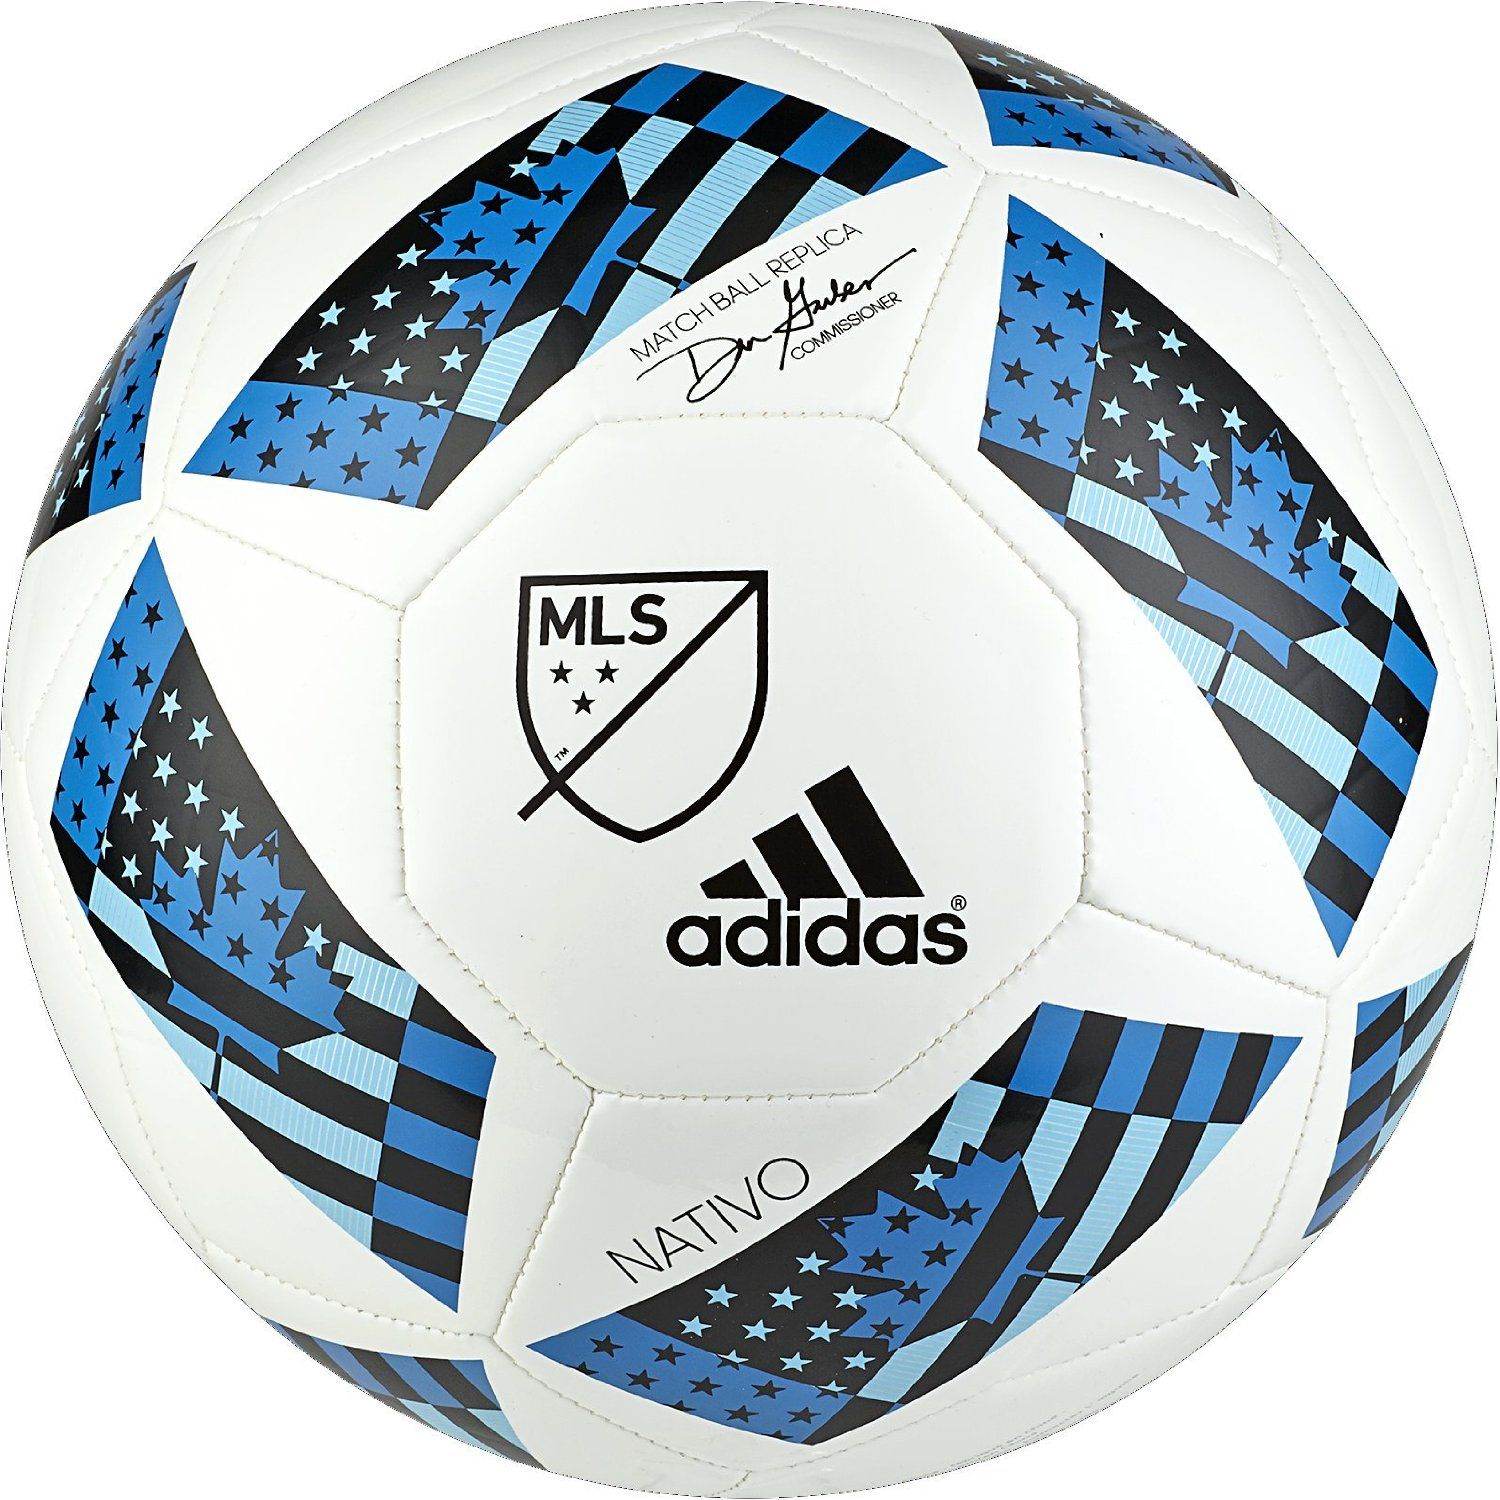 df3203cf7a1 Amazon.com   MLS Glider Soccer Ball   Sports   Outdoors